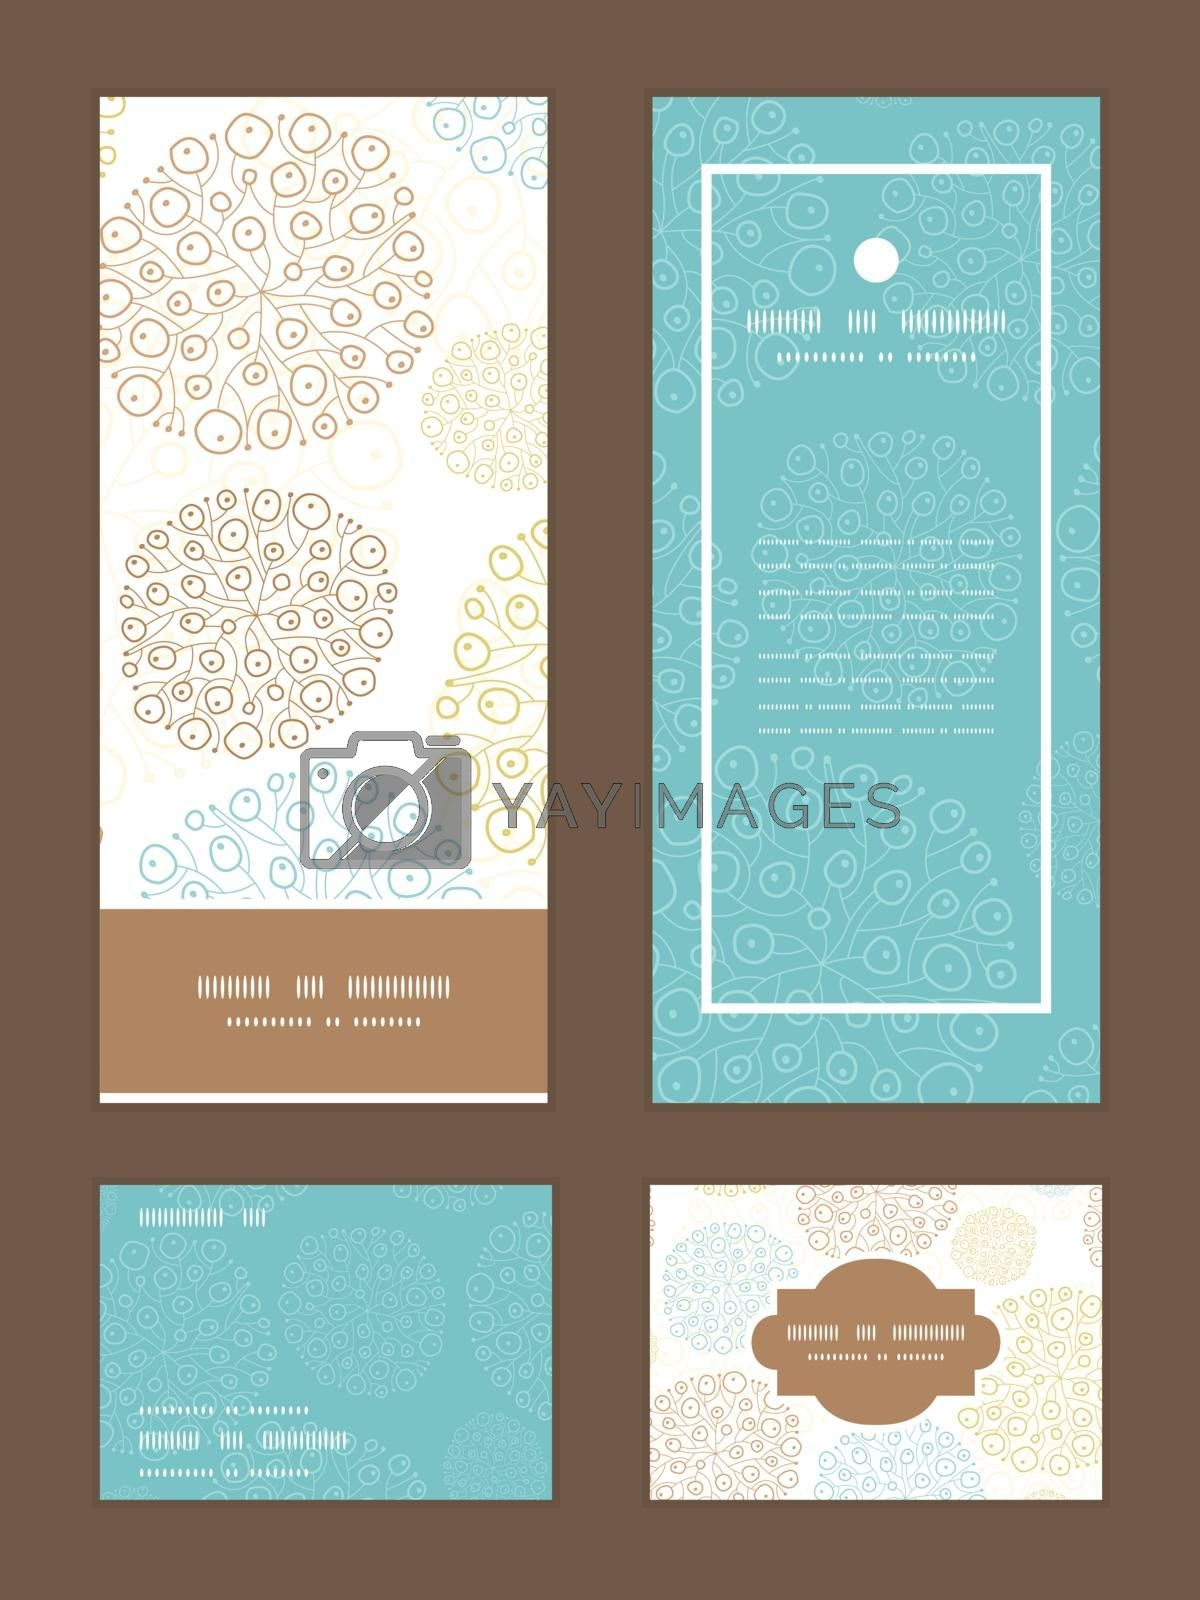 Vector blue brown abstract seaweed texture vertical frame pattern invitation greeting, RSVP and thank you cards set graphic design